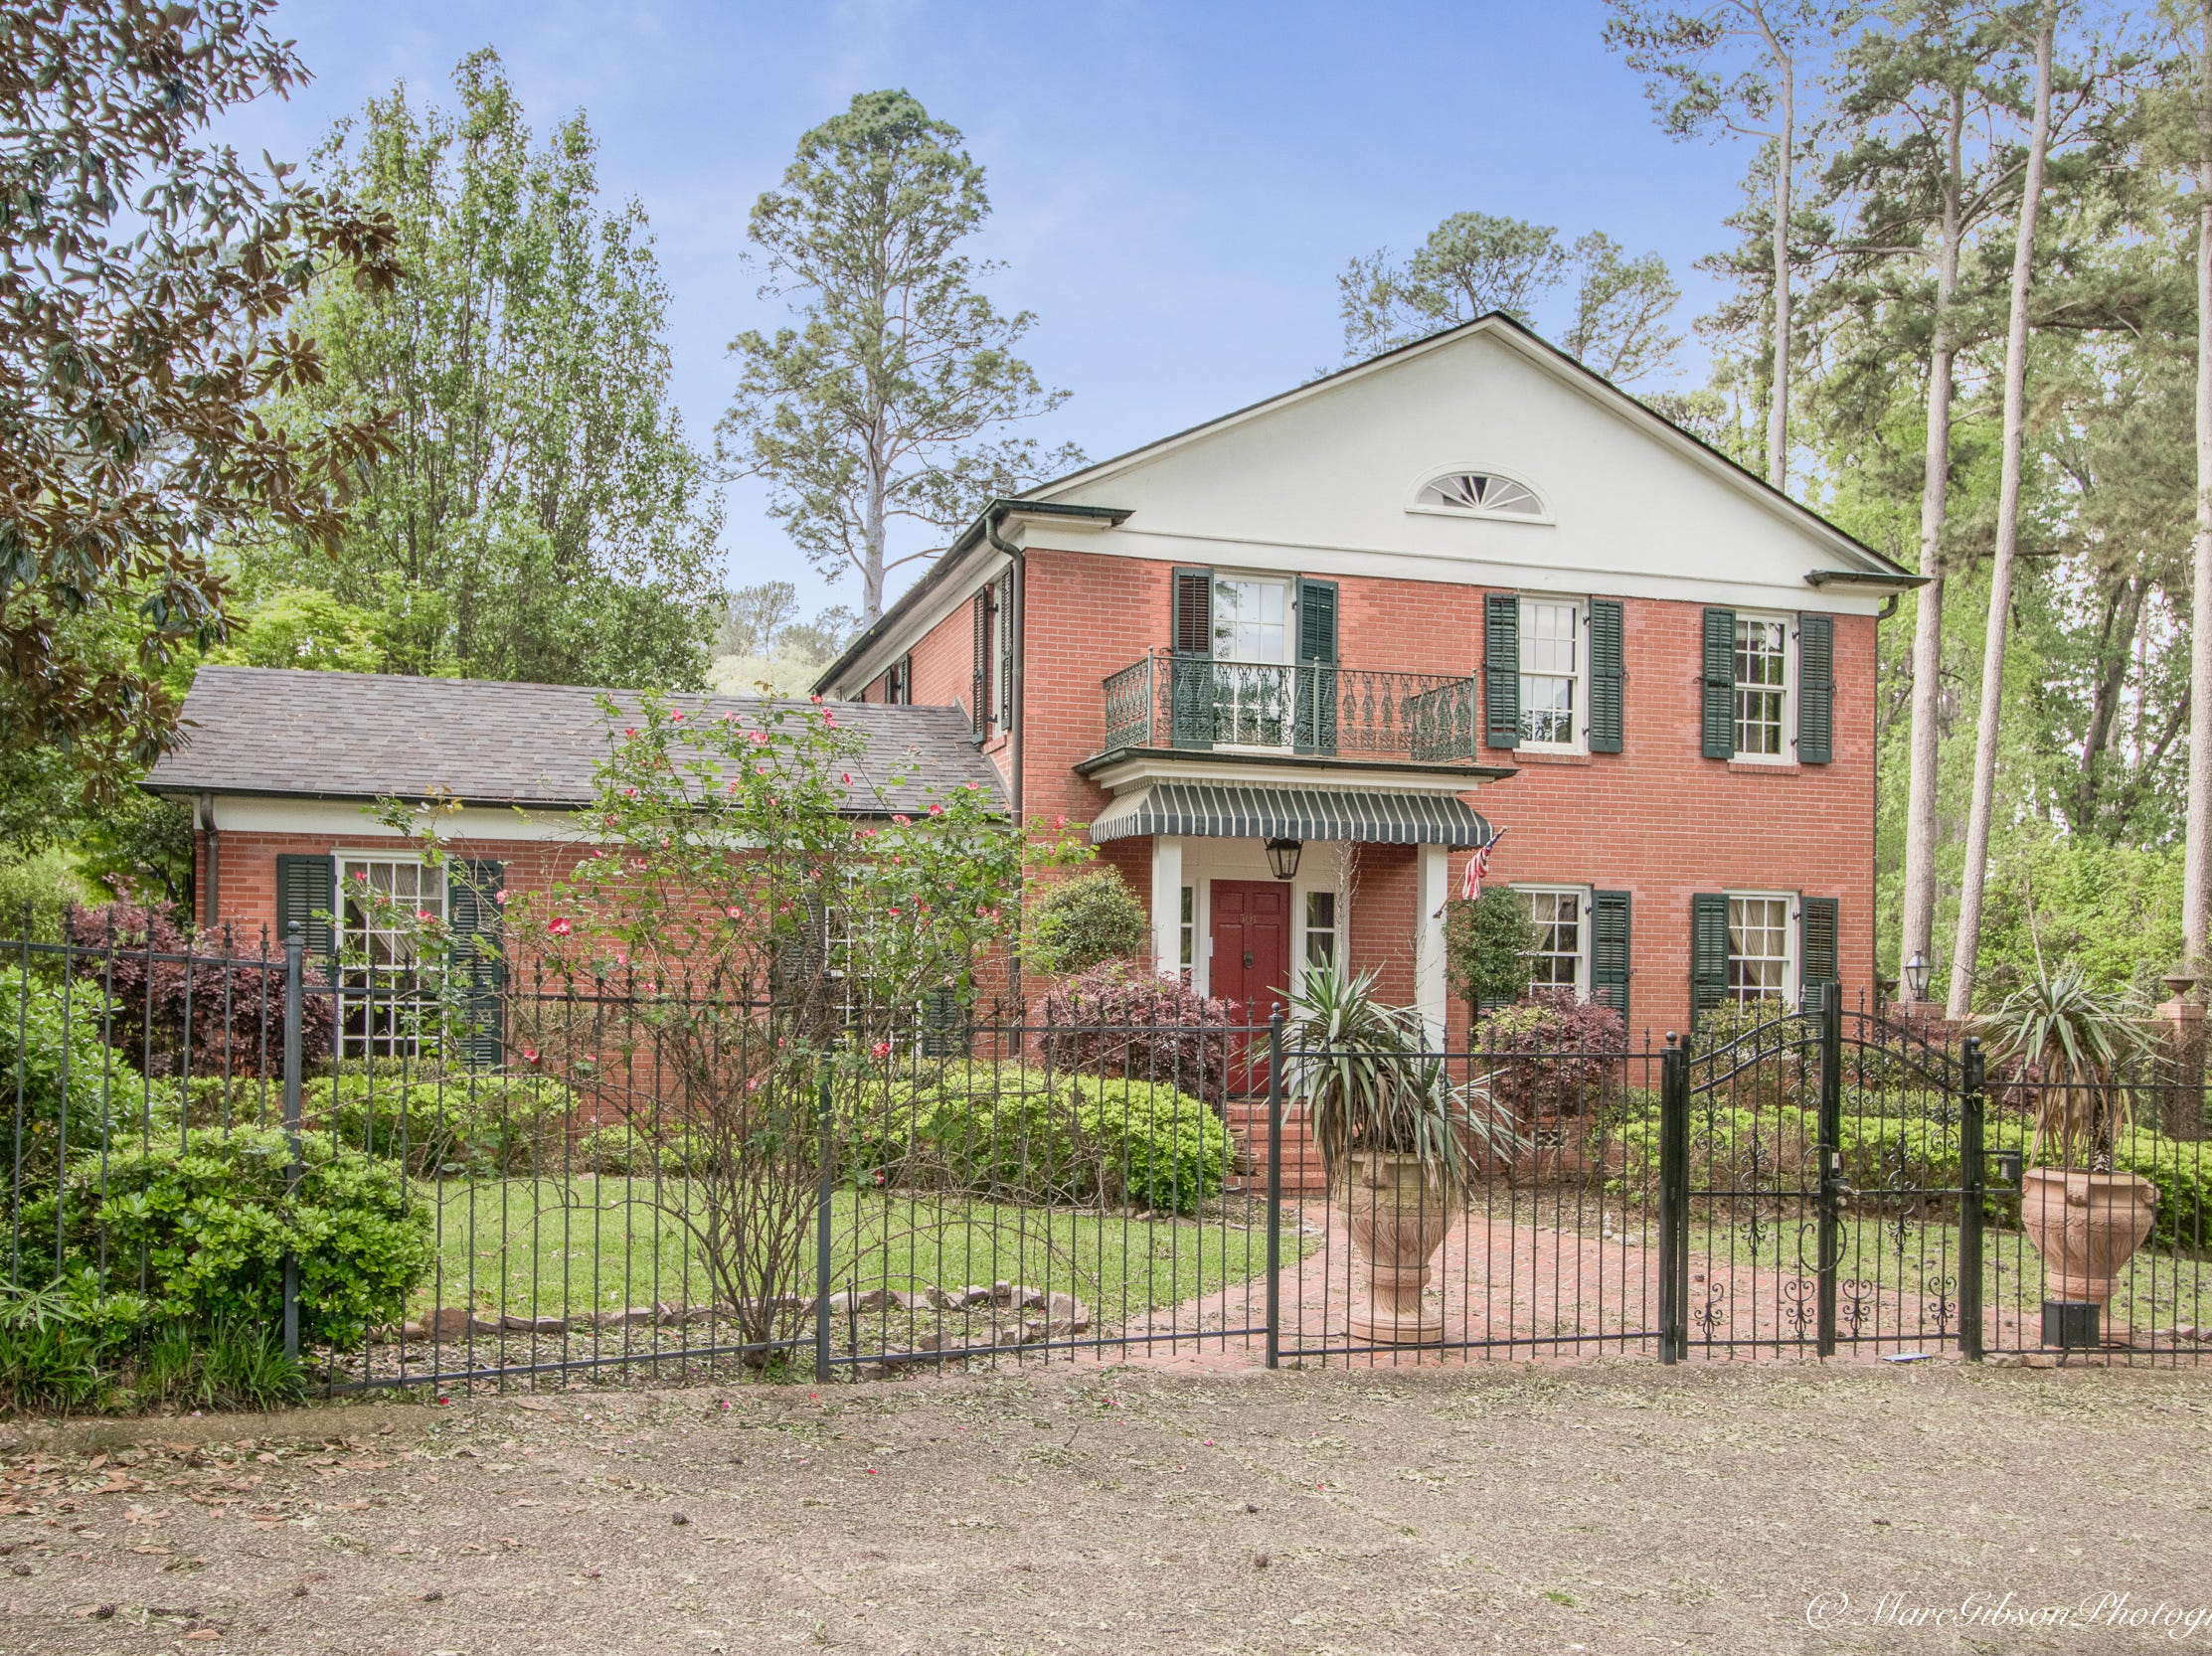 501 Pierremont Road, Shreveport  Price: $689,000  Details: 4 bedrooms, 4 bathrooms, 4,475 square feet  Special features: Historic home in the heart of Pierremont on over 1 acre.   Contact: Tammi Montgomery, 453-3373